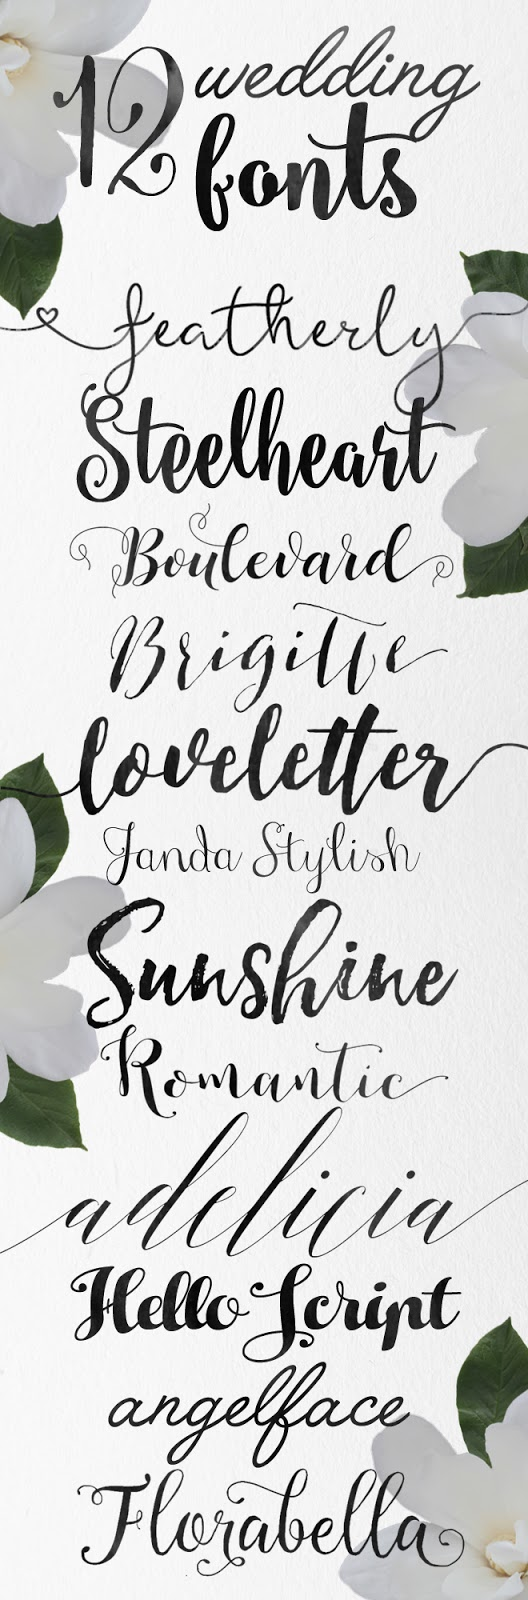 Calligraphy wedding fonts skyla design Calligraphy youtube